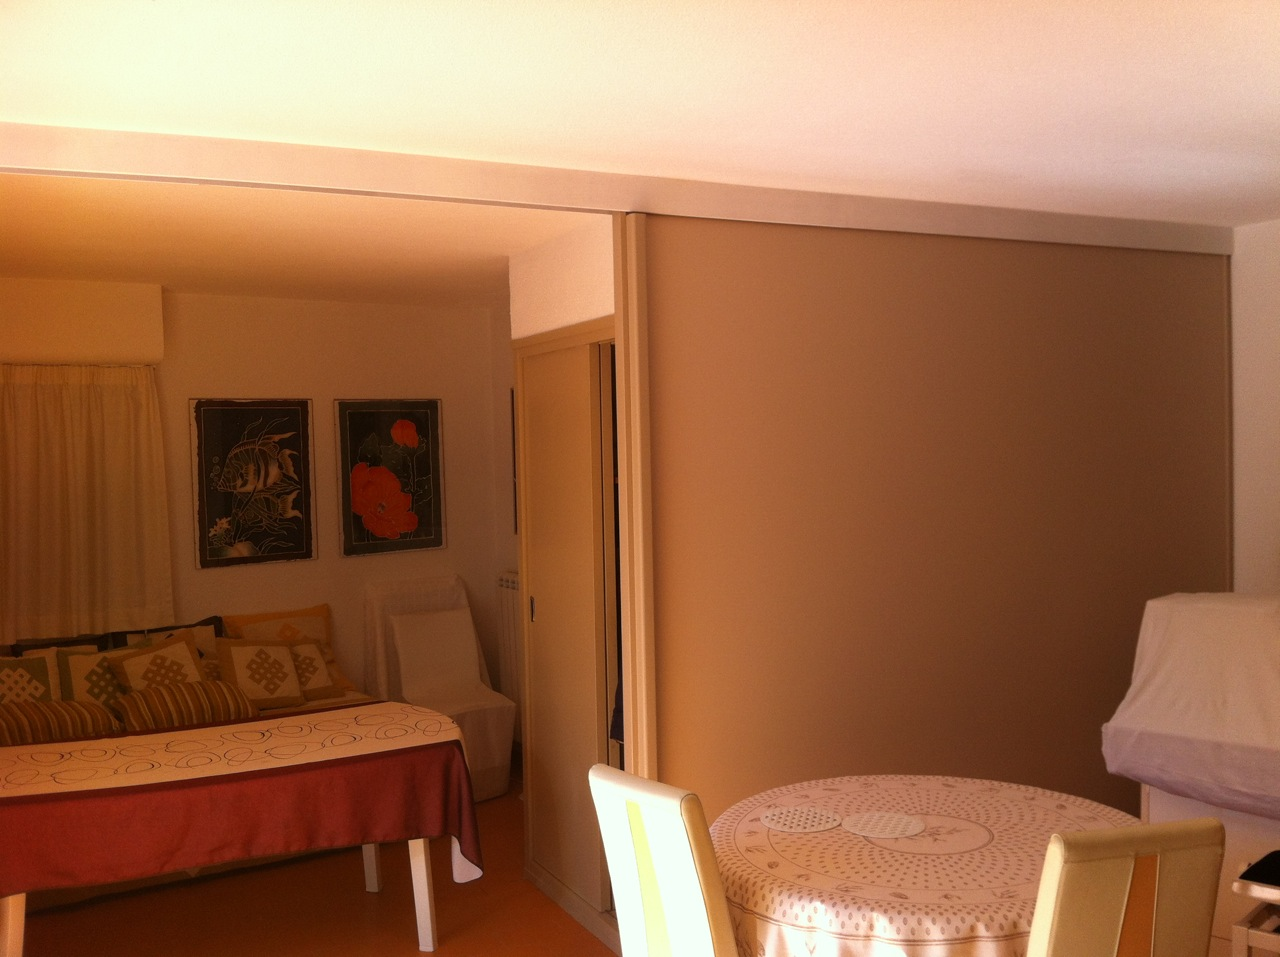 Cloison Mobile Appartement. Simple Cloison Mobile Appartement With ...